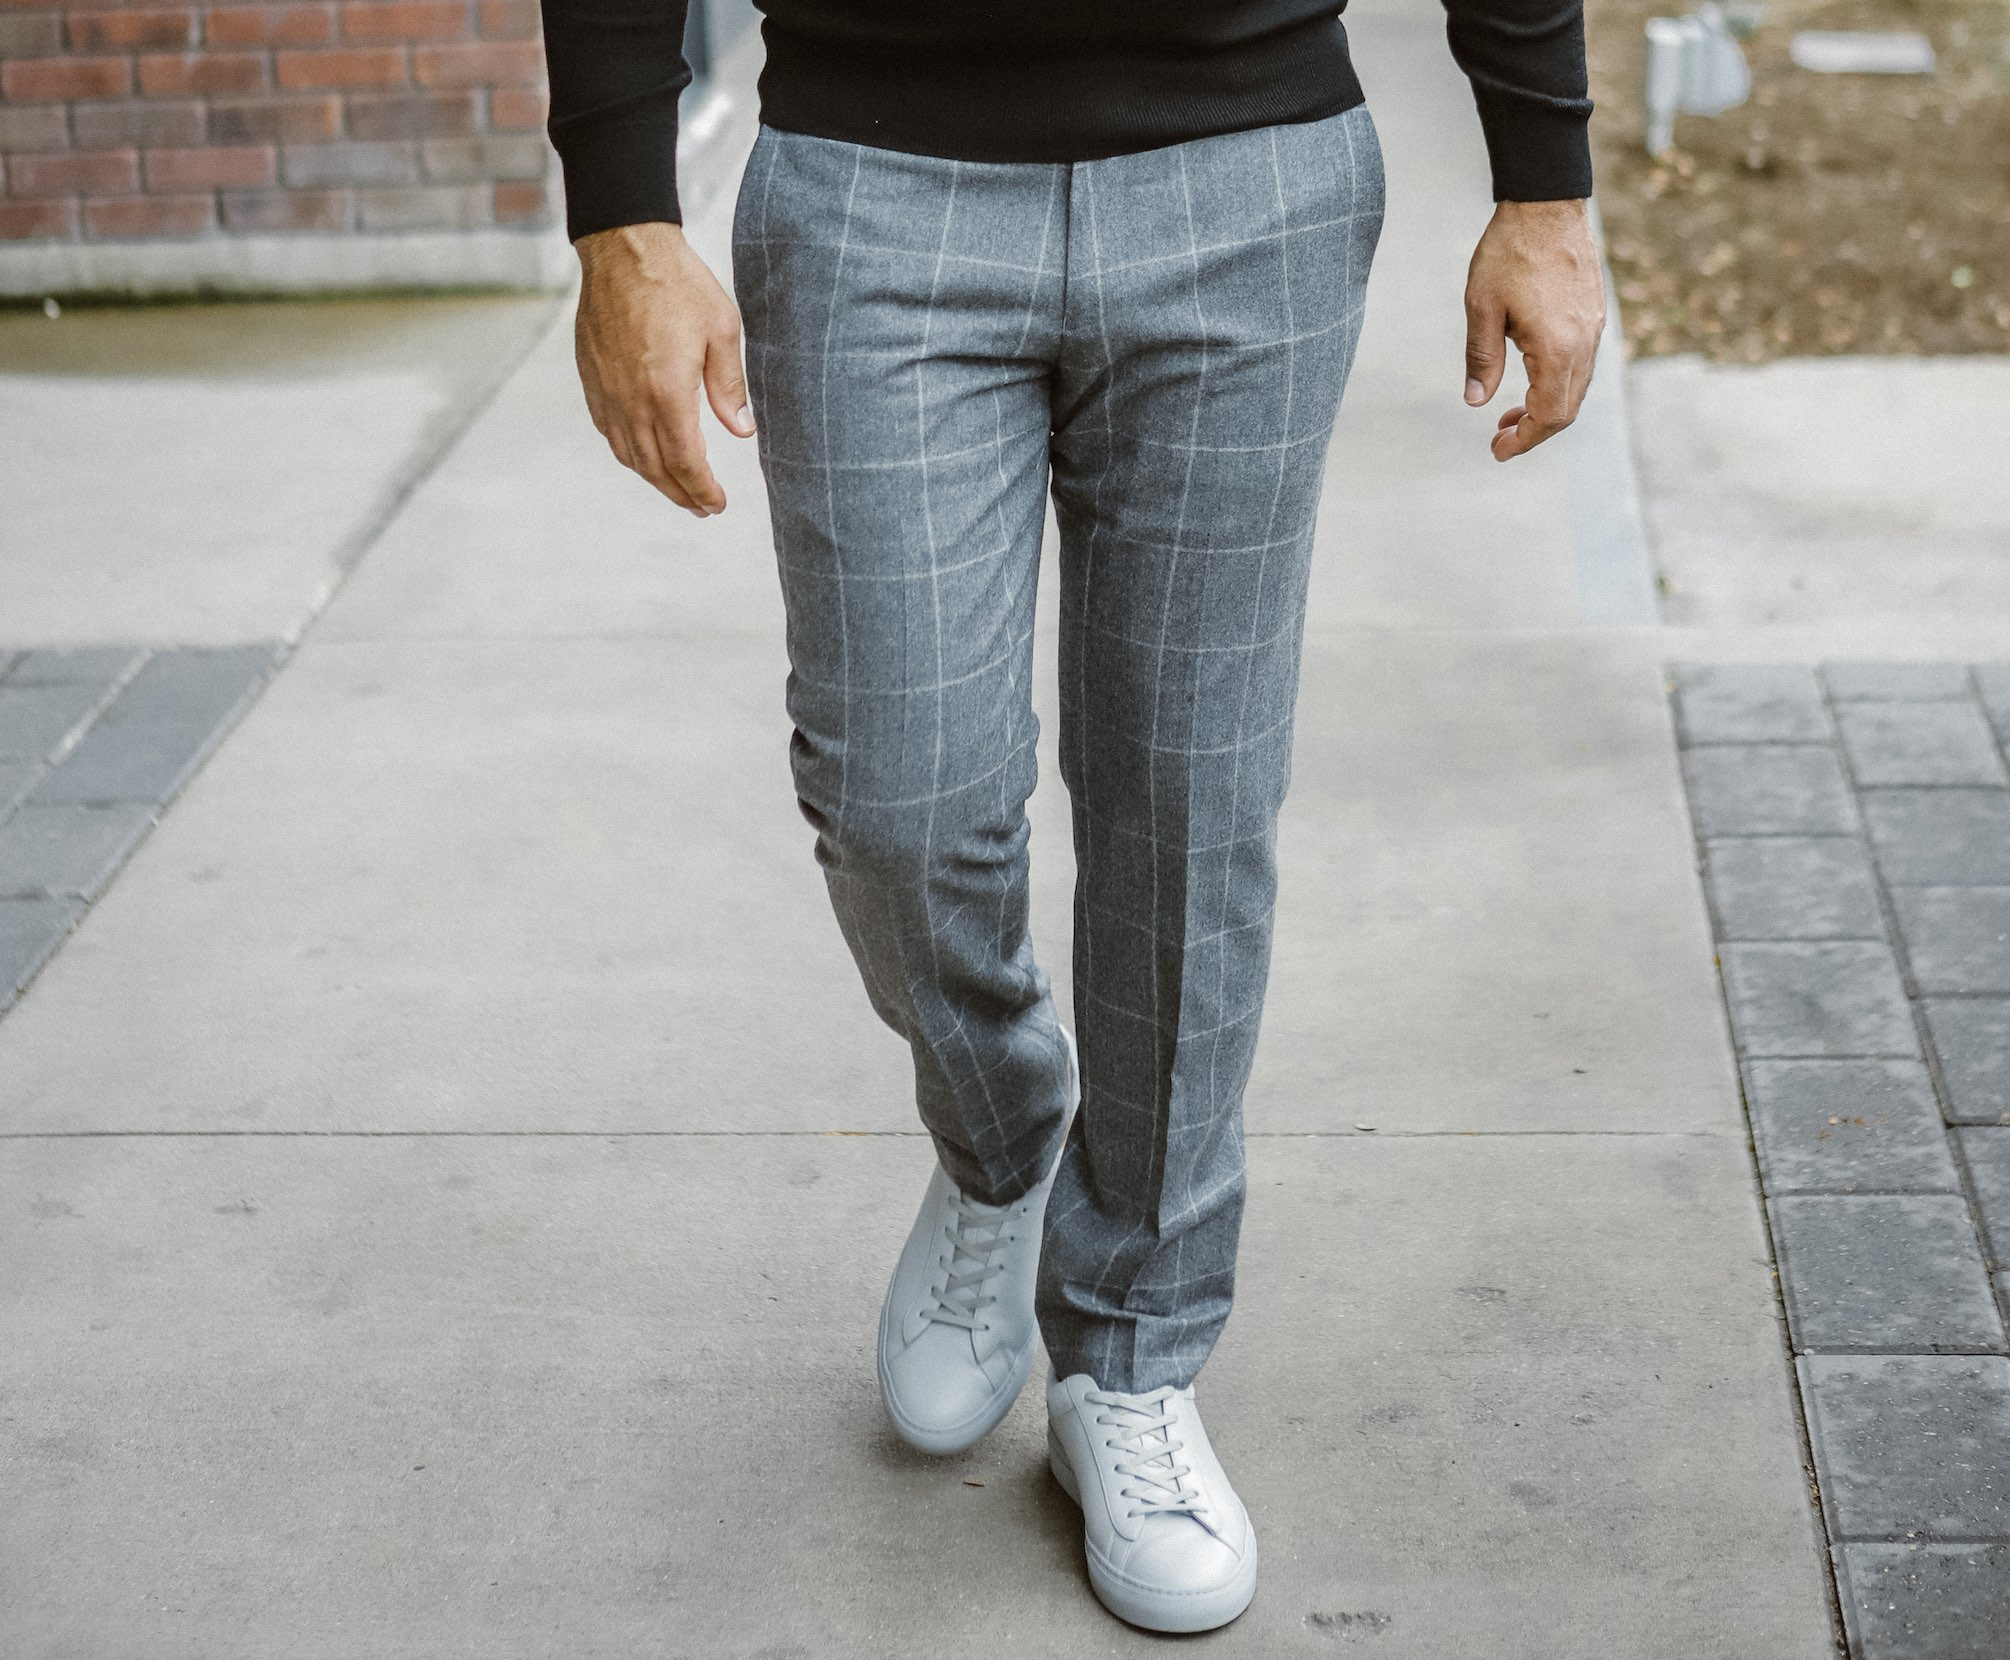 How to Dress In Your 40s (and Beyond